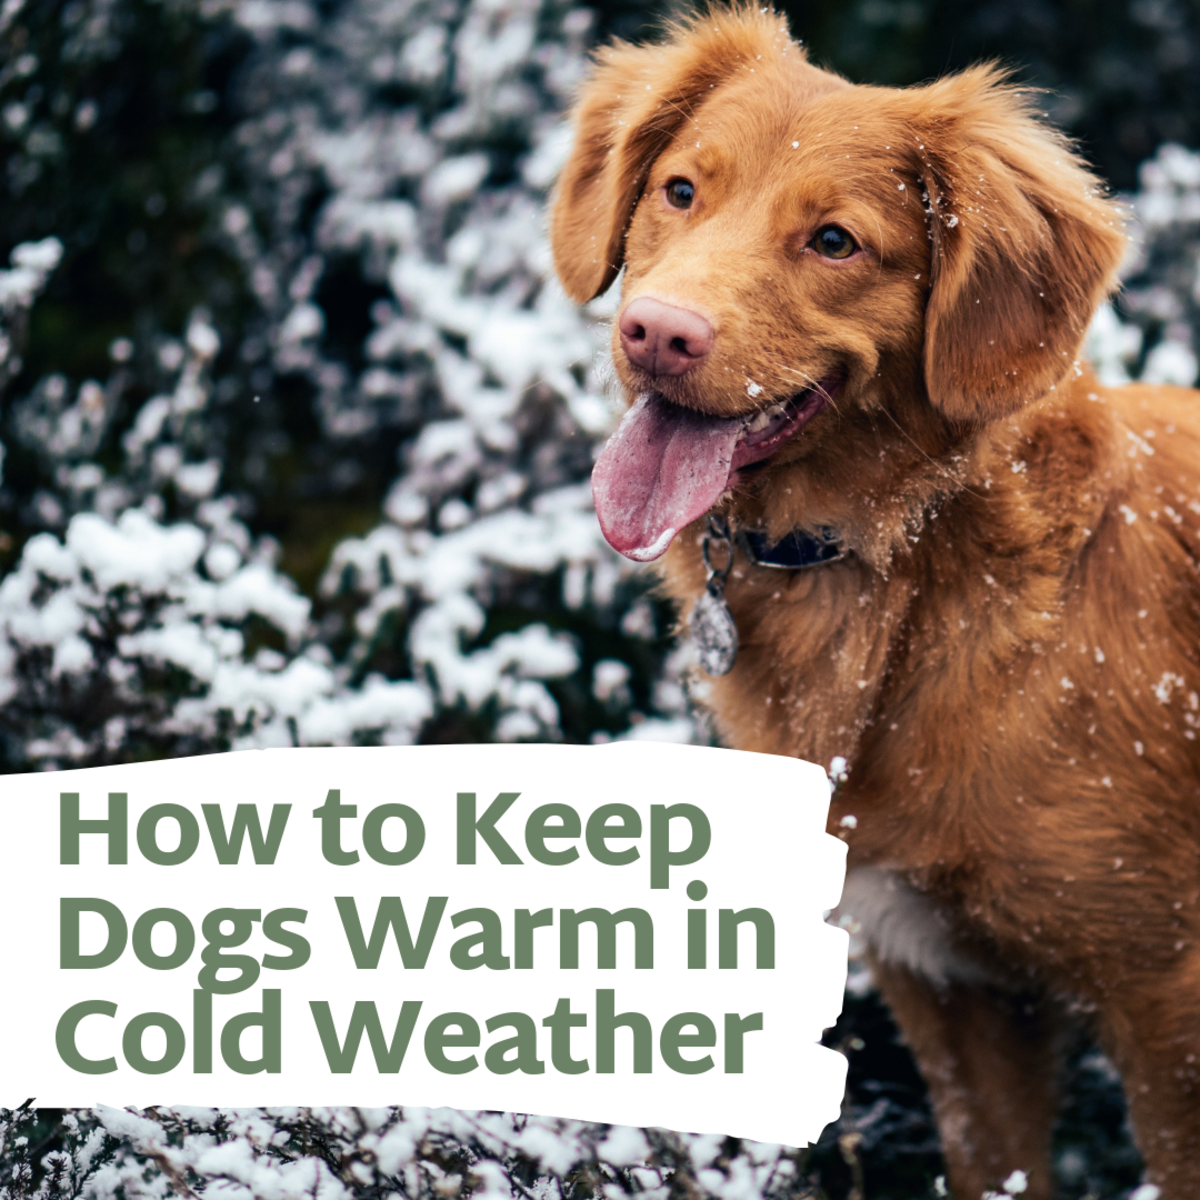 Heated Dog Houses and Ways to Keep Your Dog Warm in Winter